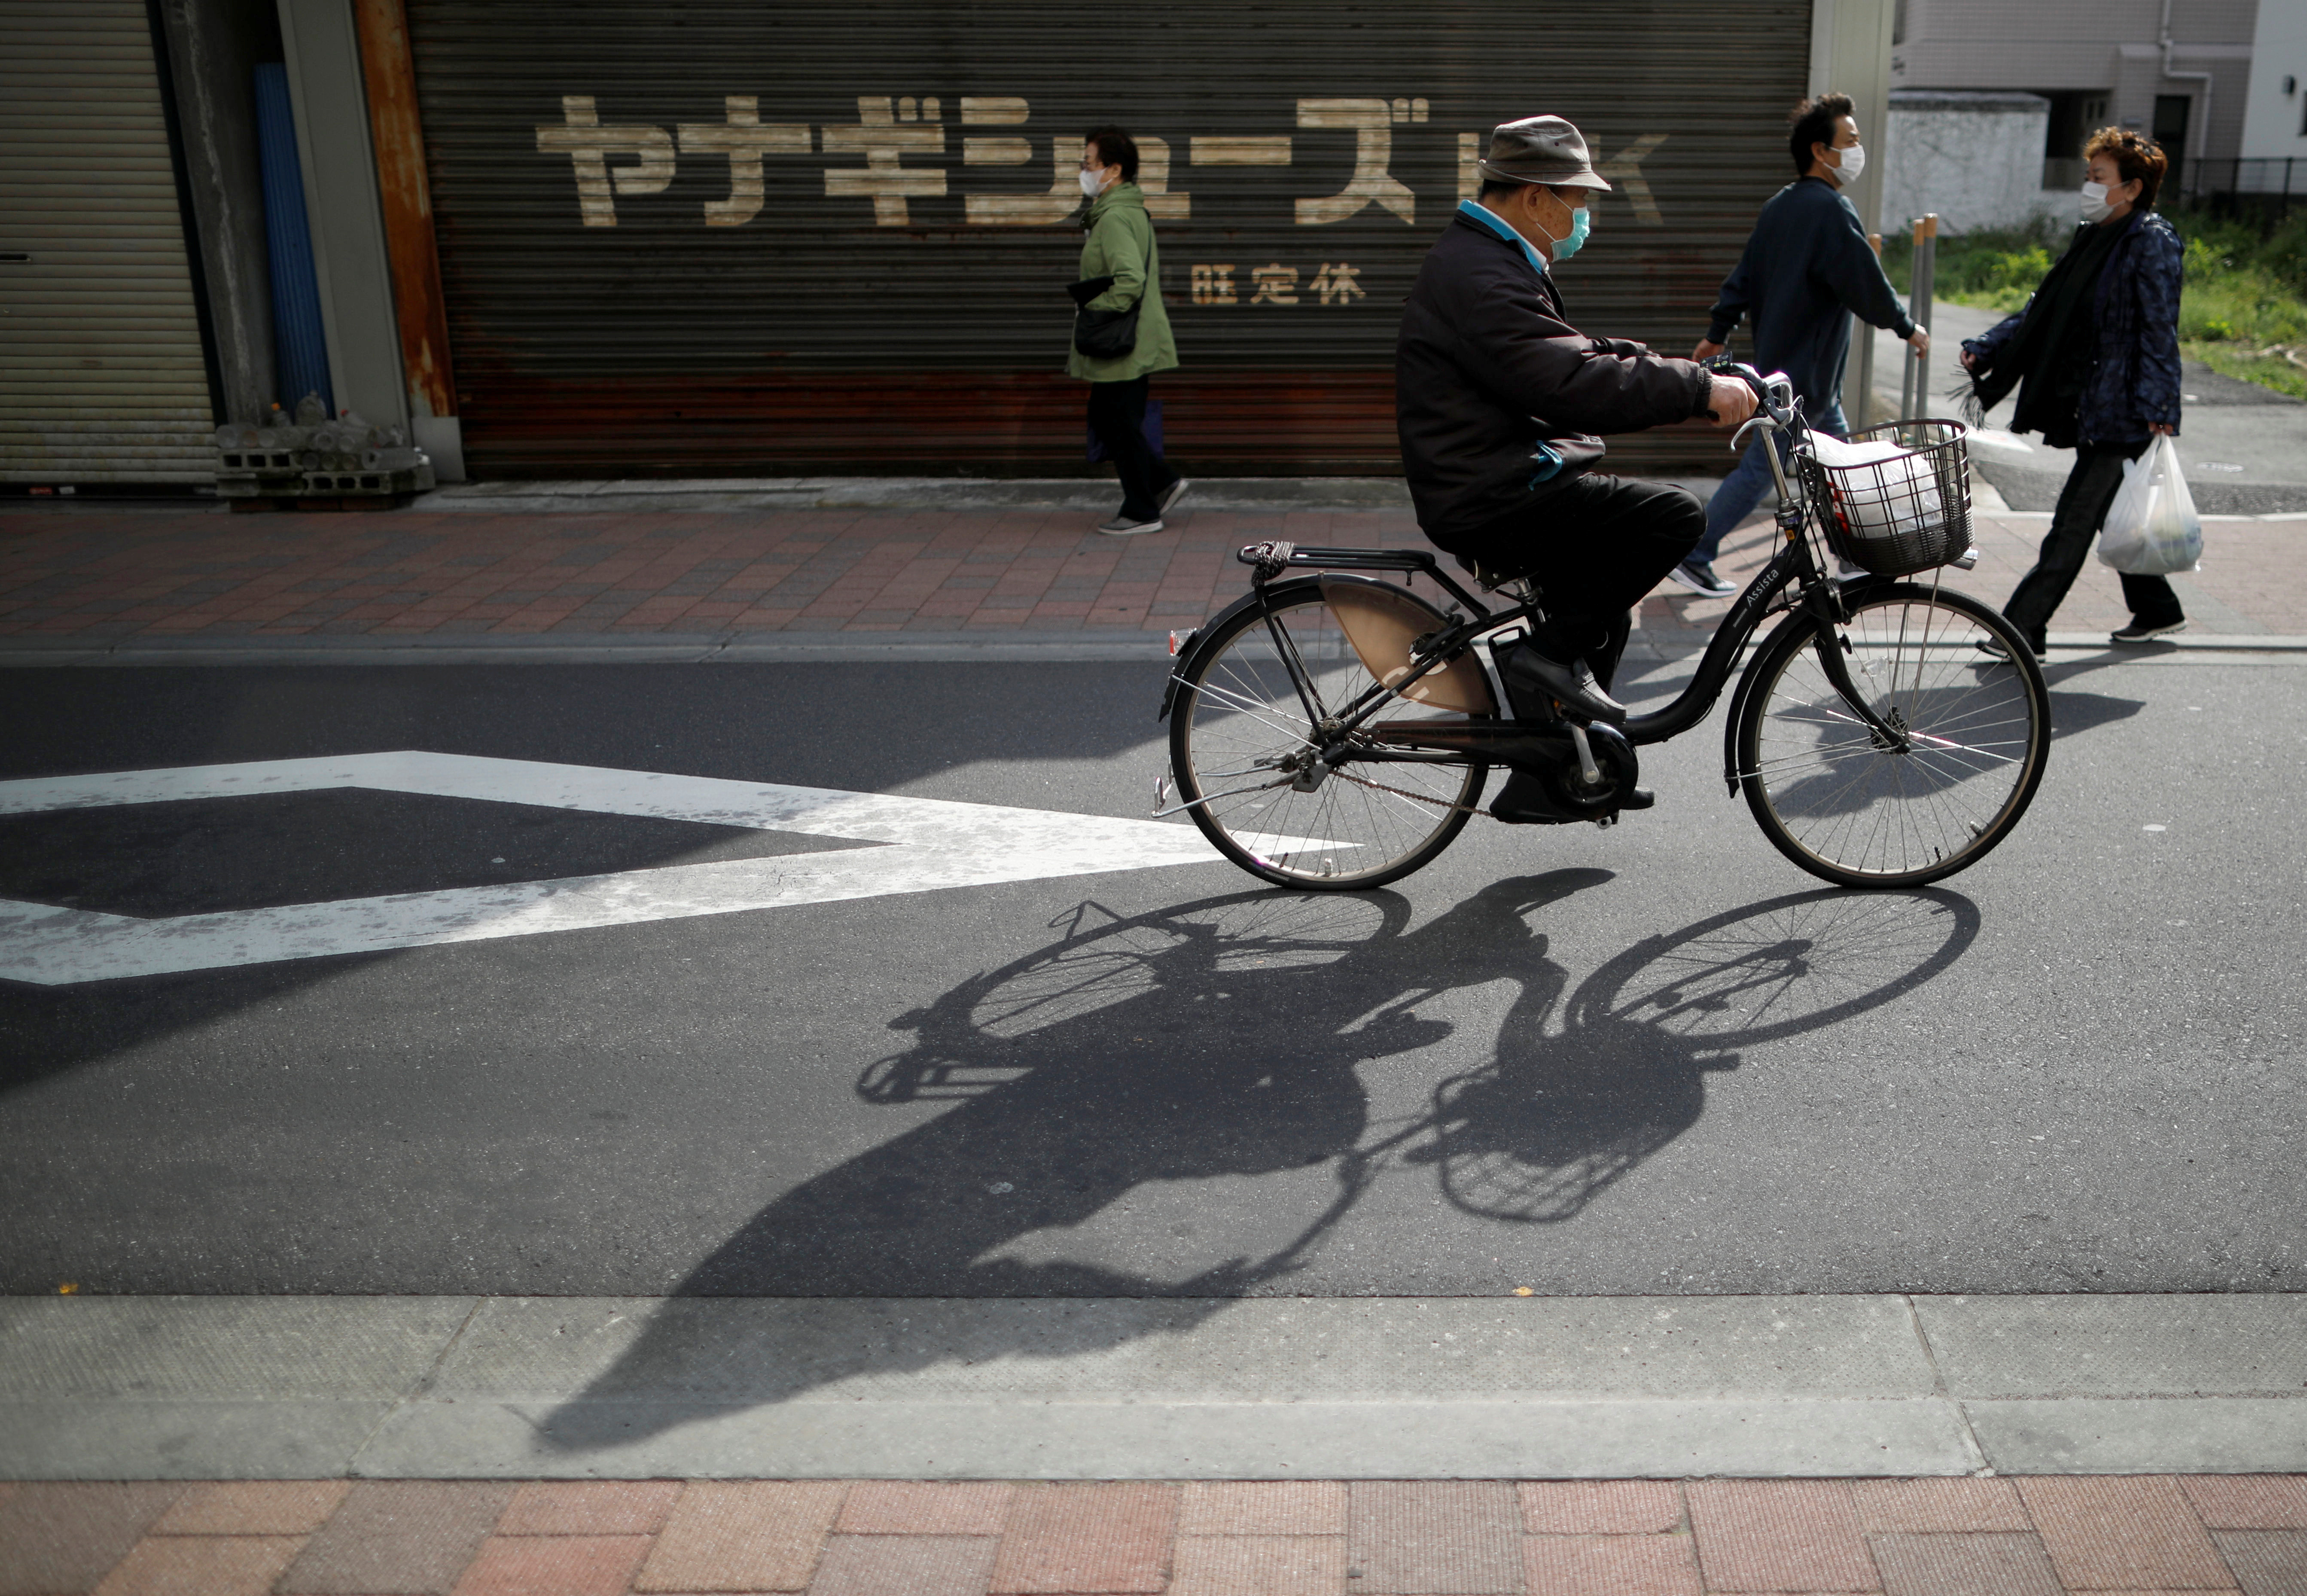 In Japan, the period when people's day-to-day mobility is restricted is getting longer, not shorter